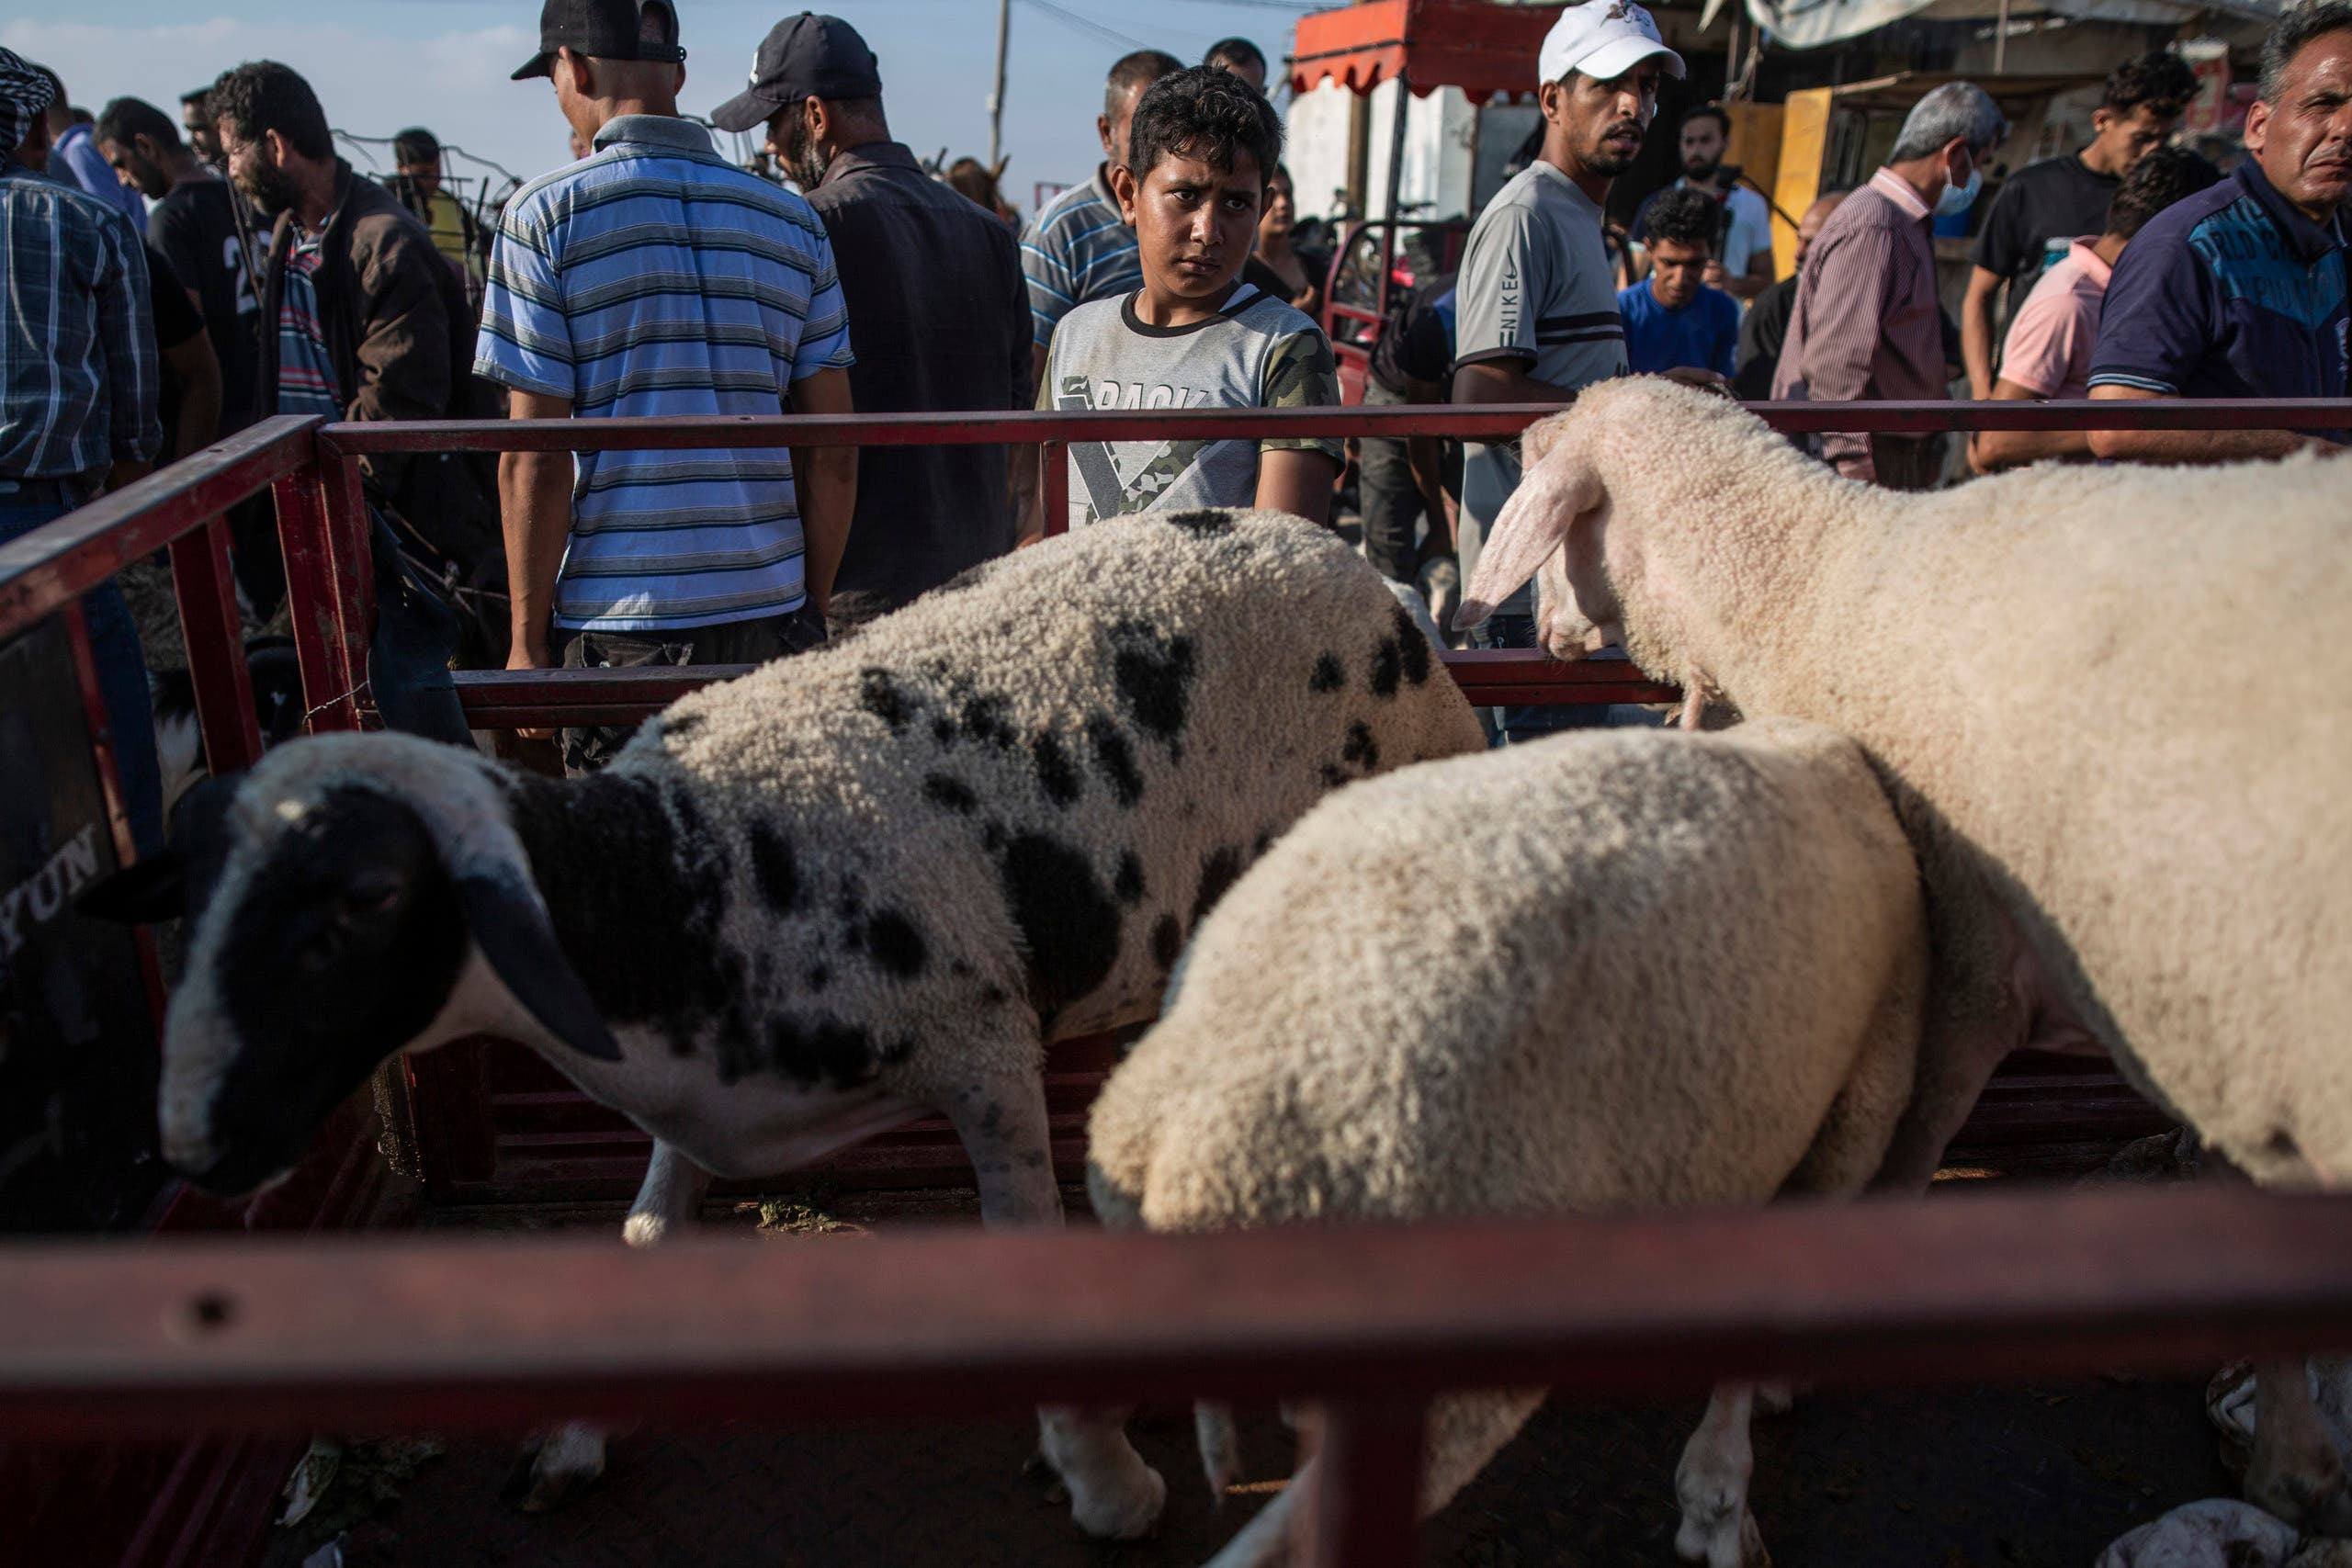 Vendors wait for customers as people look to buy sheep at a livestock market in preparation for the upcoming Muslim Eid al-Adha holiday in Gaza City, Friday, July 9, 2021. (AP)